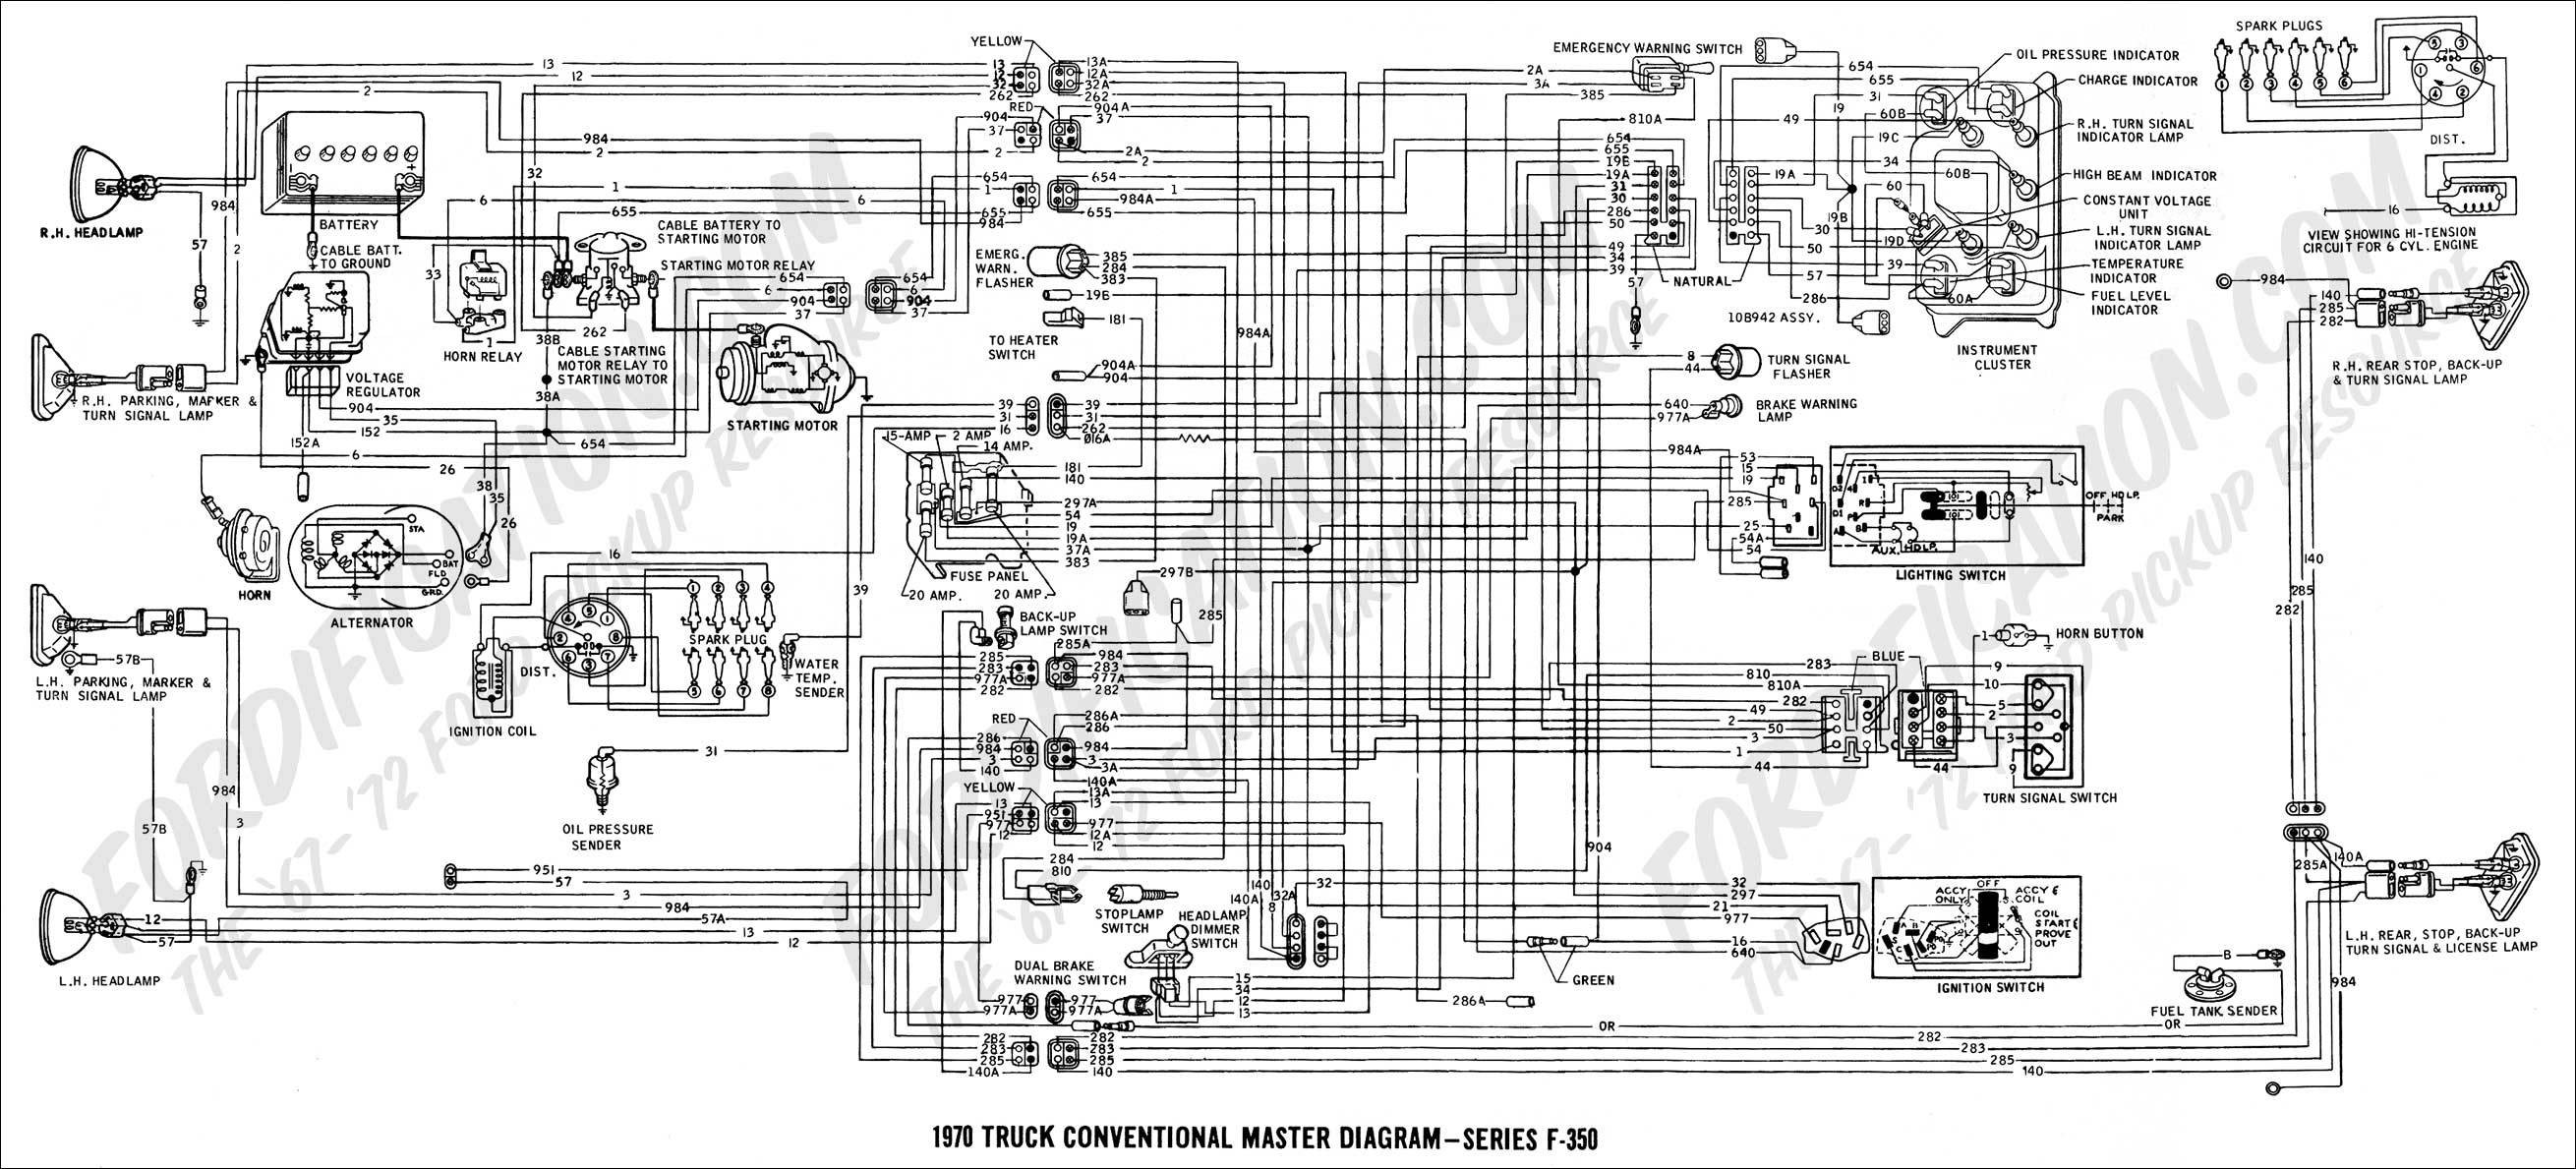 2011 ford Escape Engine Diagram Bucket 2002 F350 Superduty Electrical Wiring Diagrams Wiring Info • Of 2011 ford Escape Engine Diagram